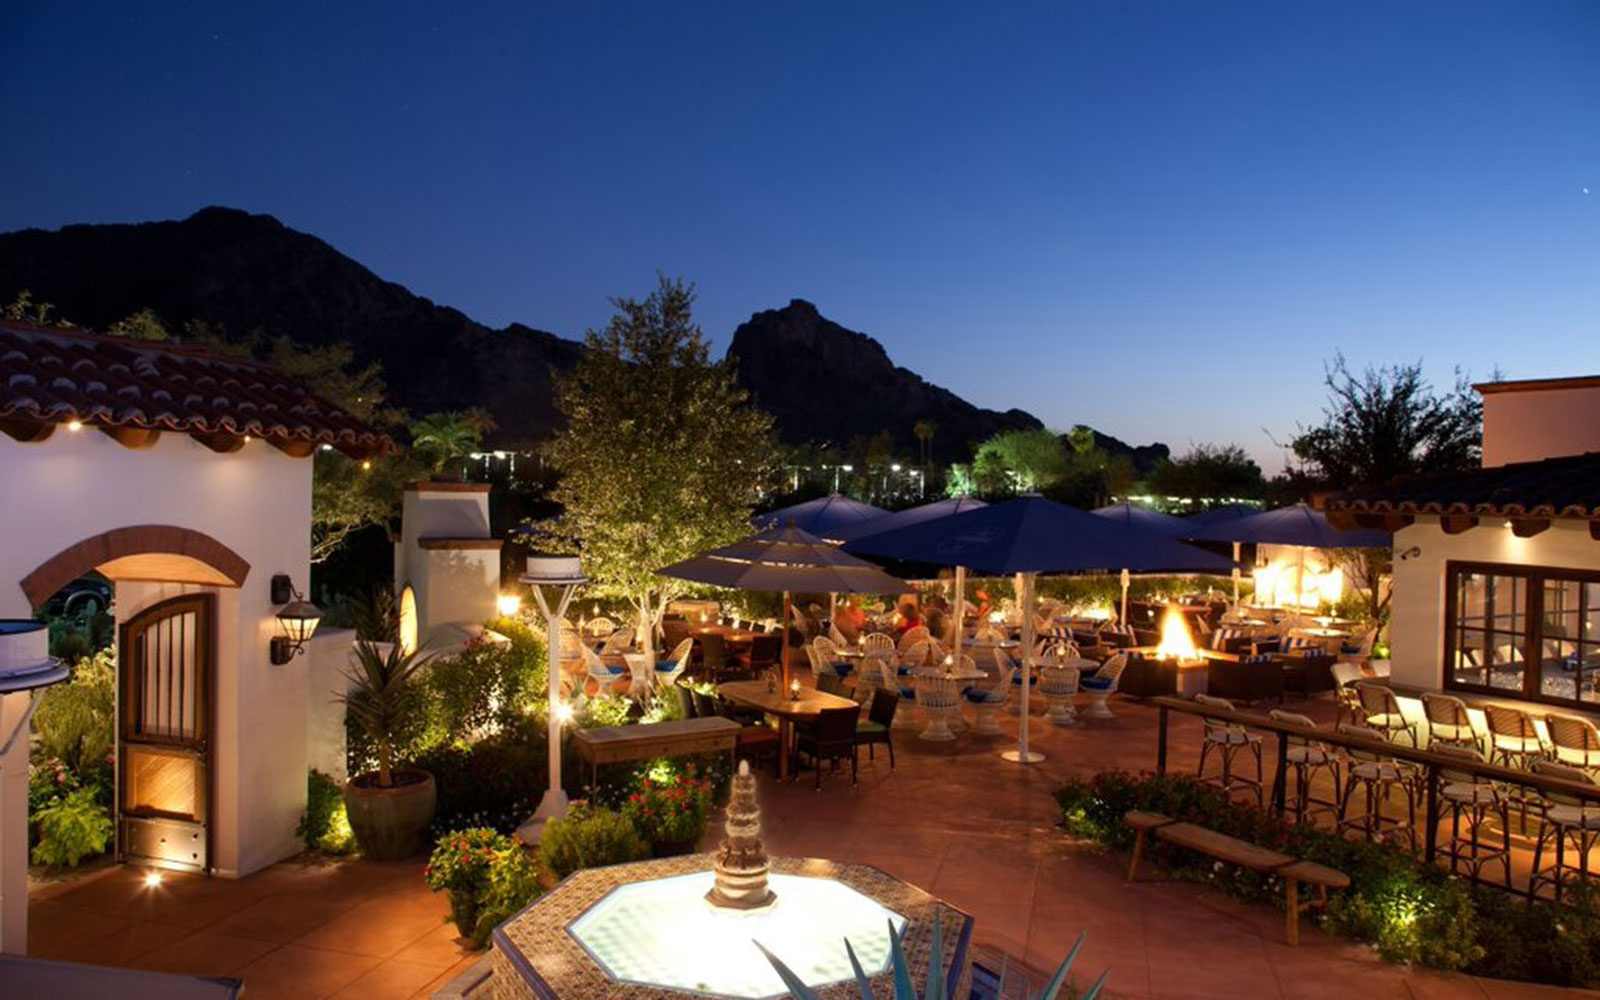 El Chorro in Paradise Valley, Arizona